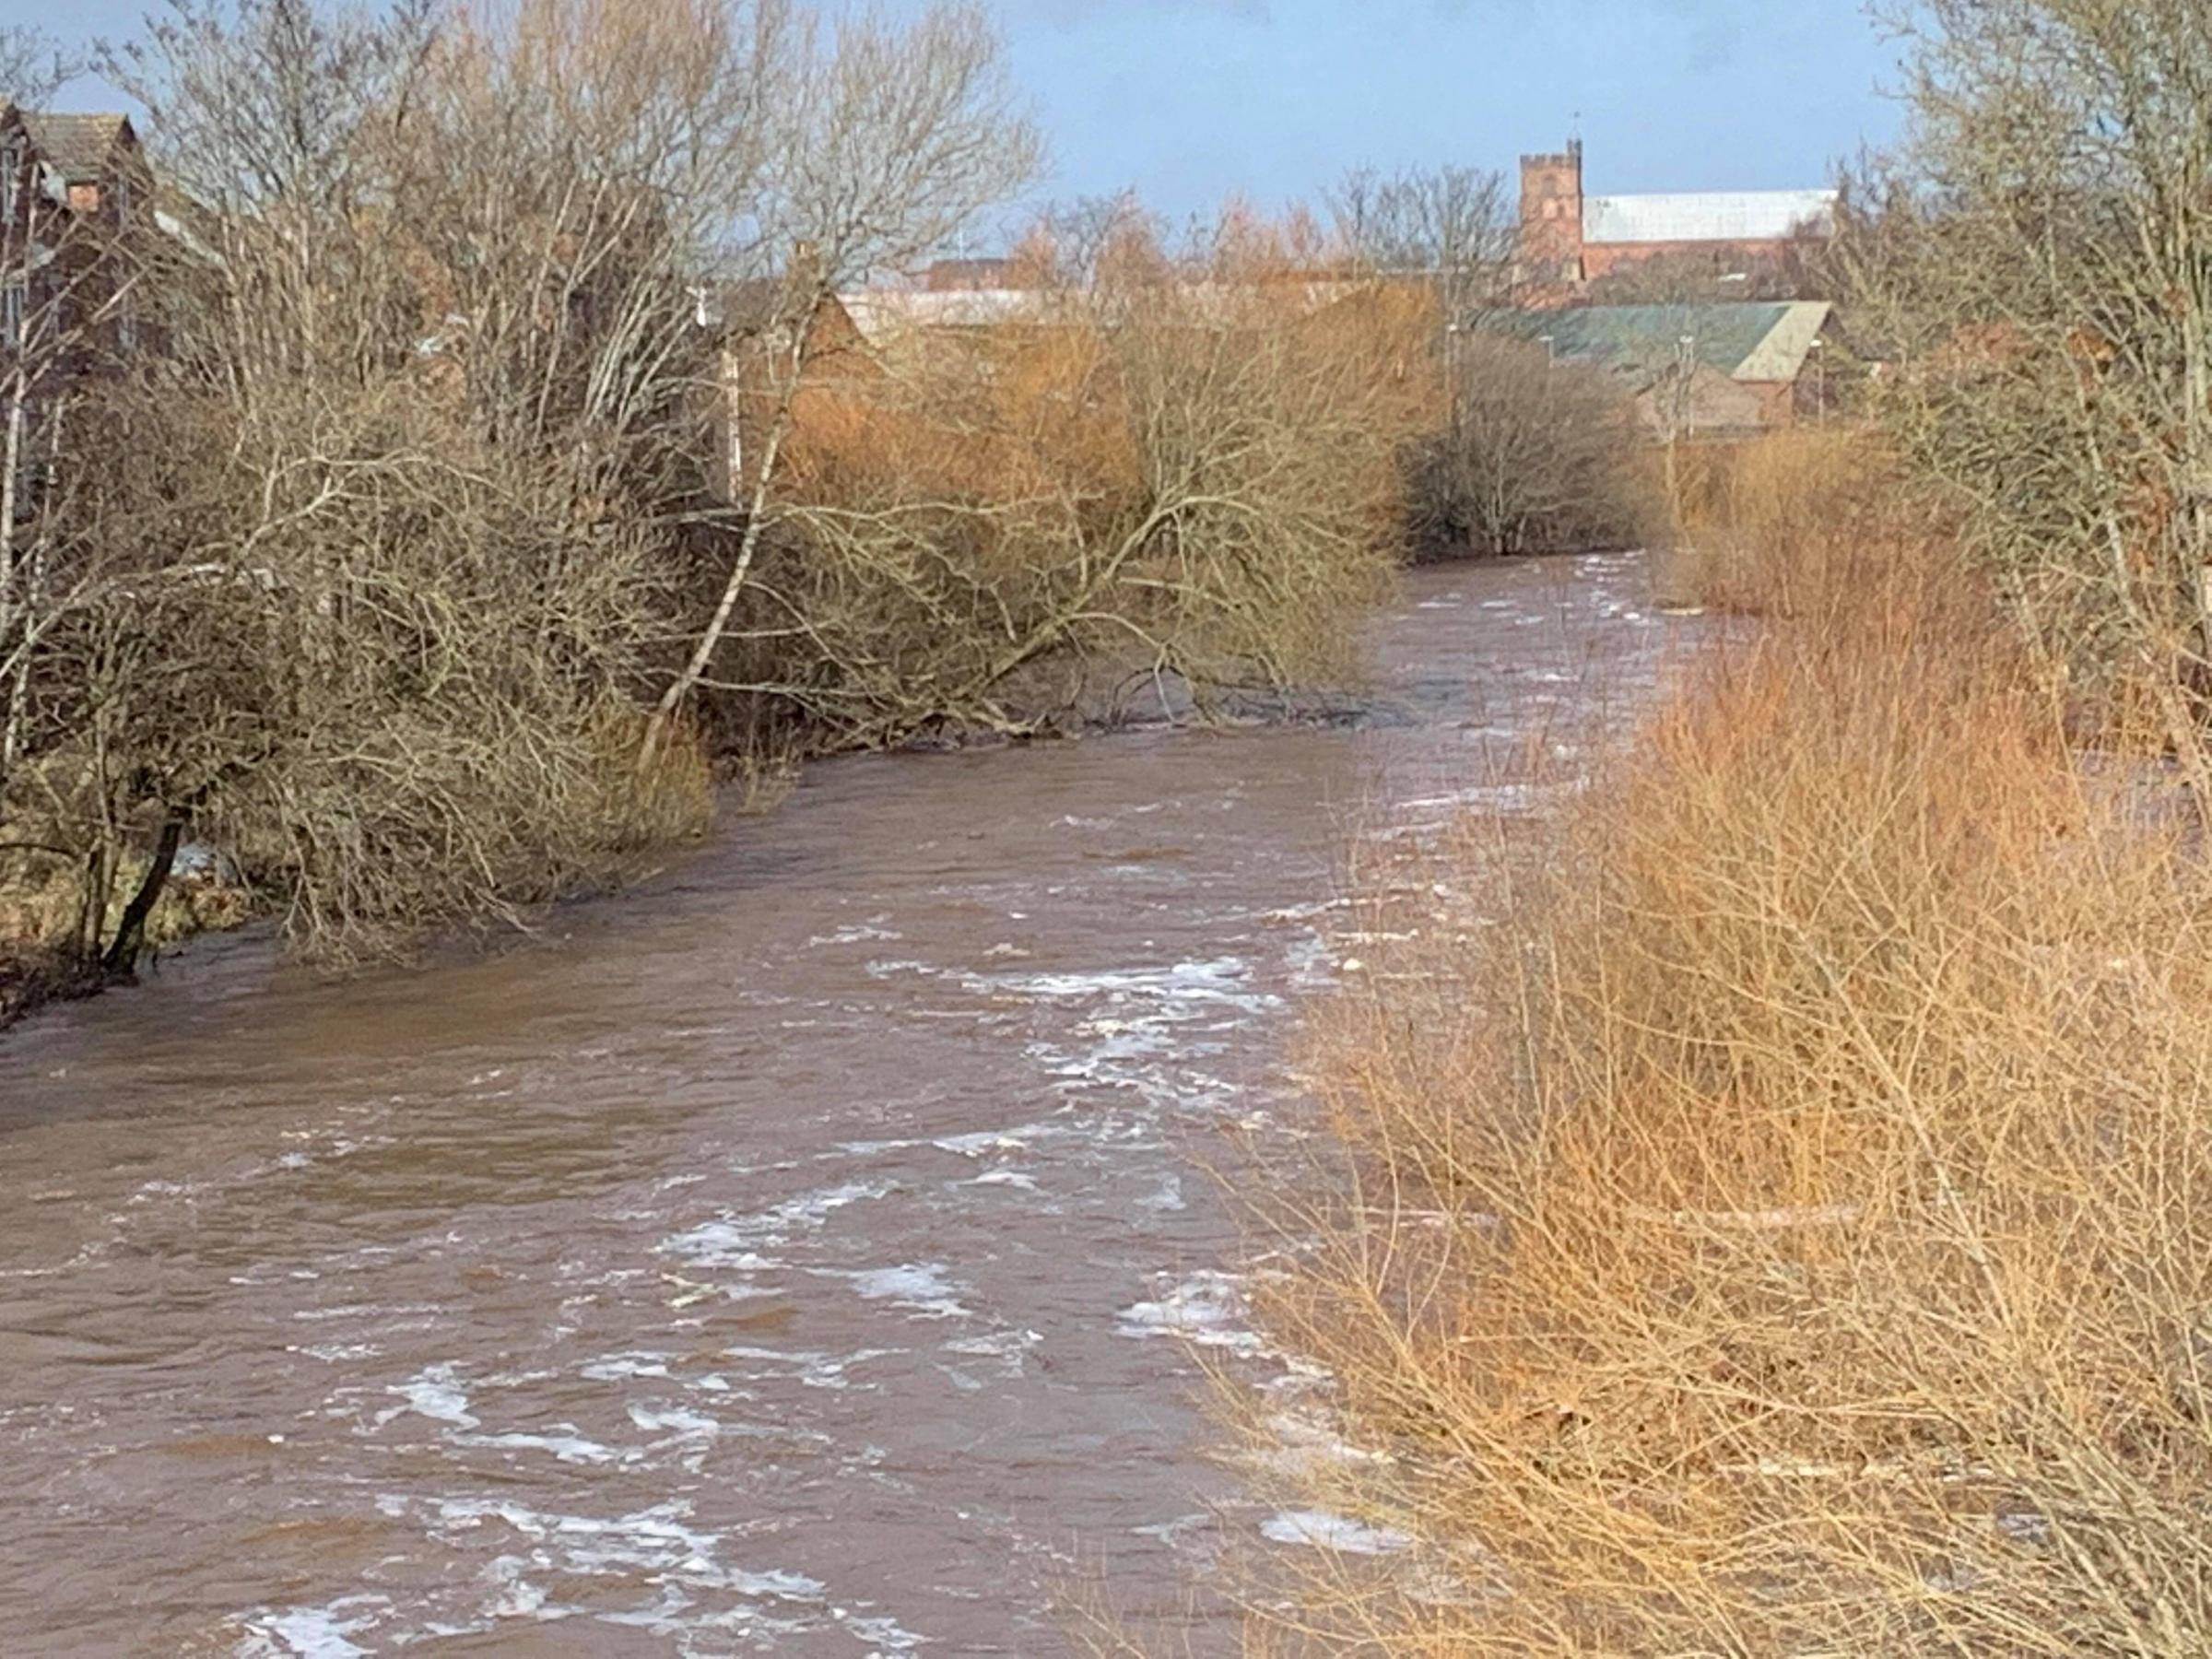 High water levels on the River Caldew in Carlisle